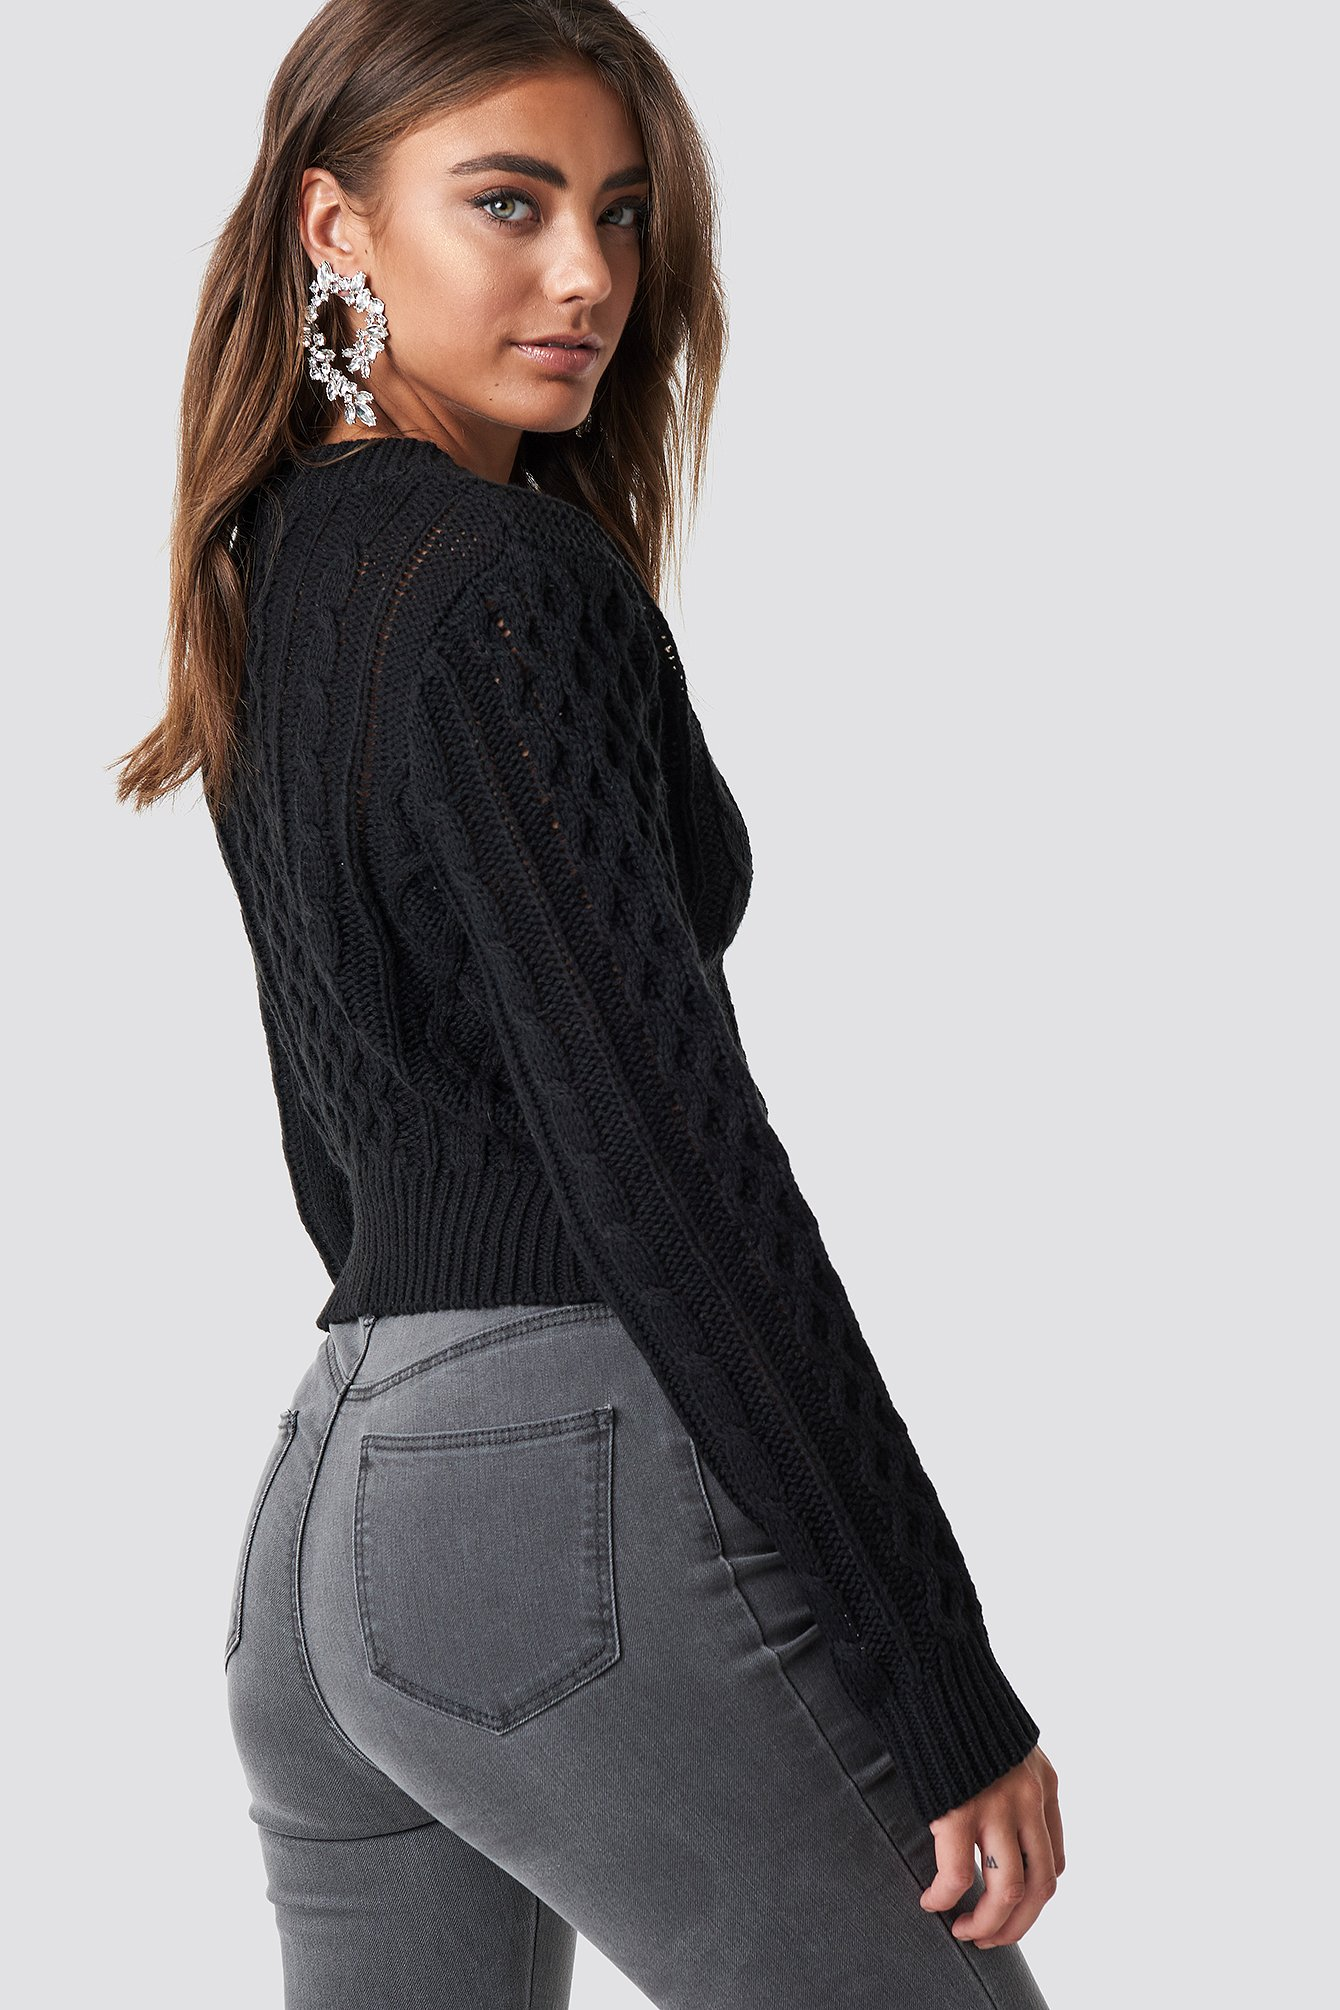 Black Cropped Cable Knit Sweater